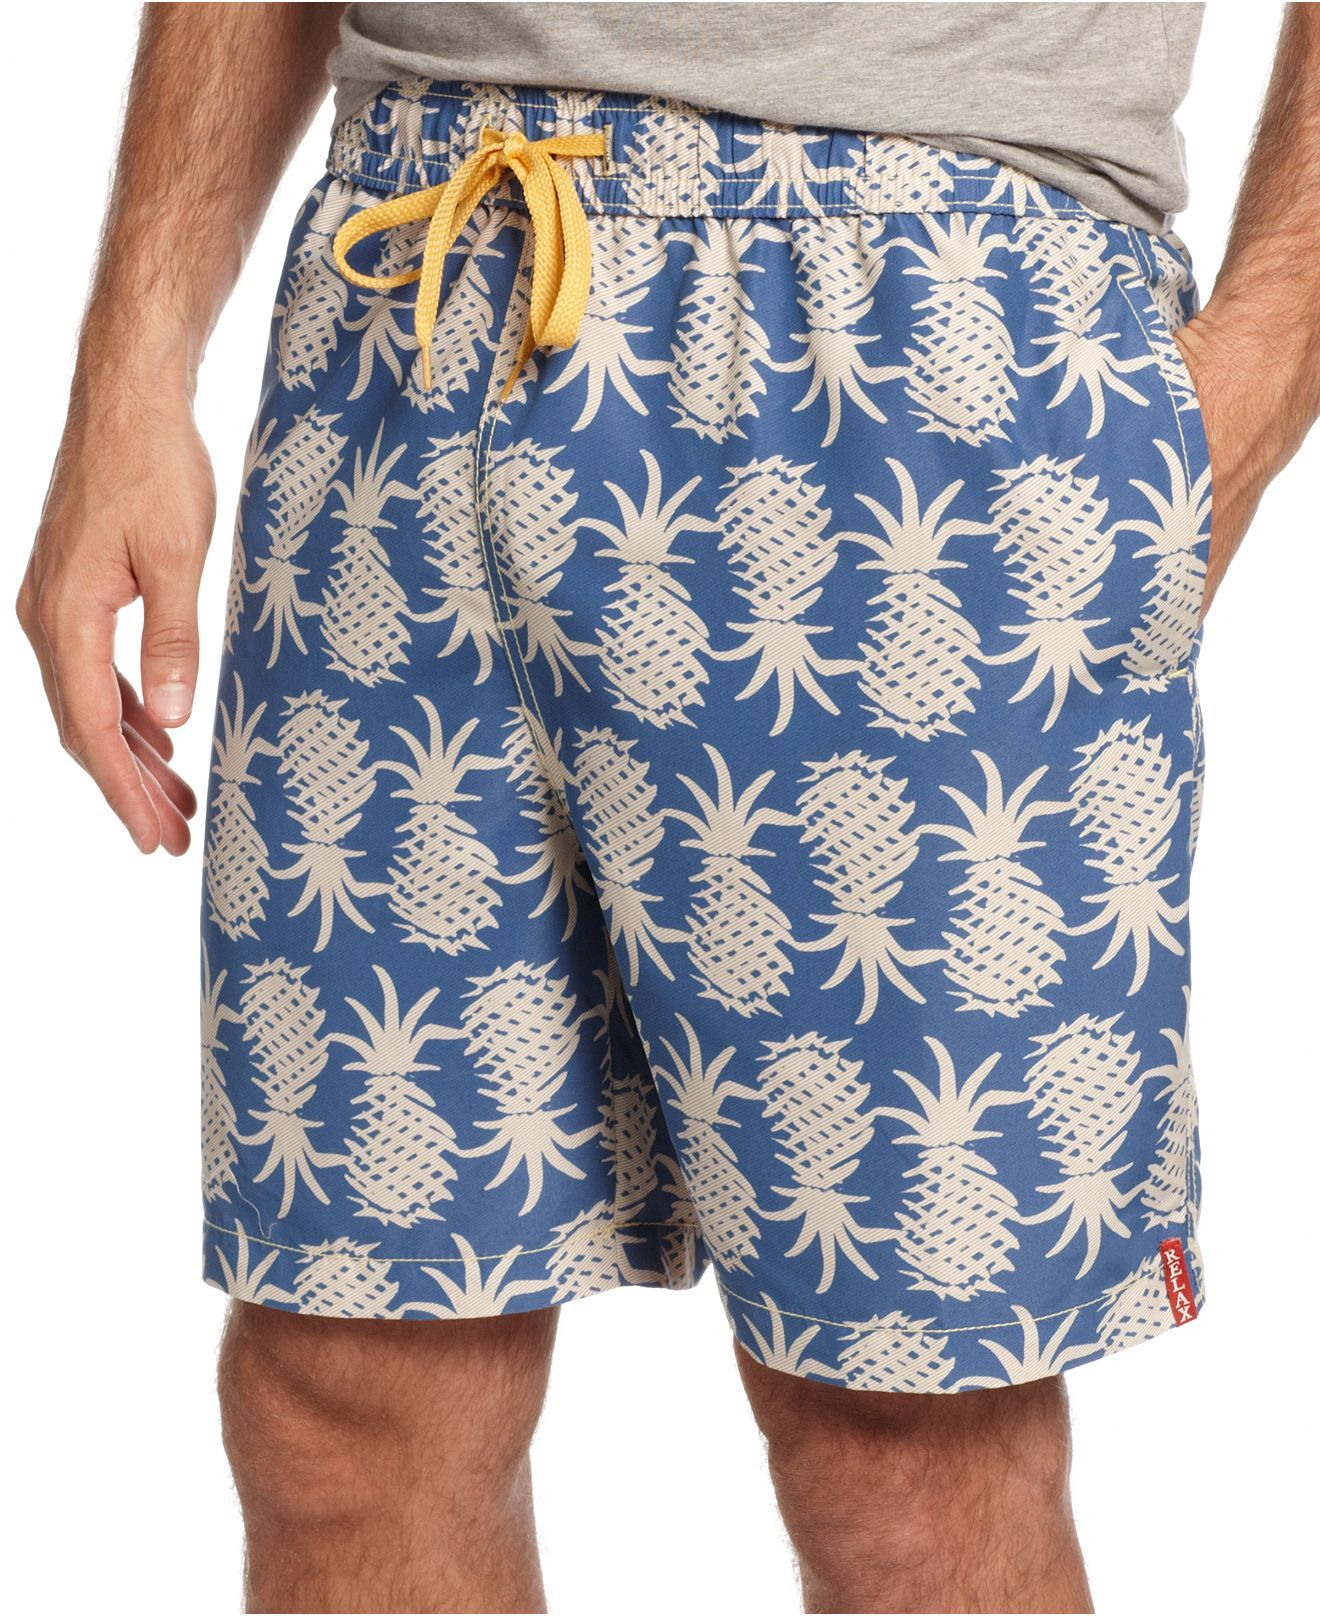 fe62316fea Tommy Bahama Swimwear, Pineapple Upside Down Trunks - Mens Swim - Macy's.  Find this Pin and more ...